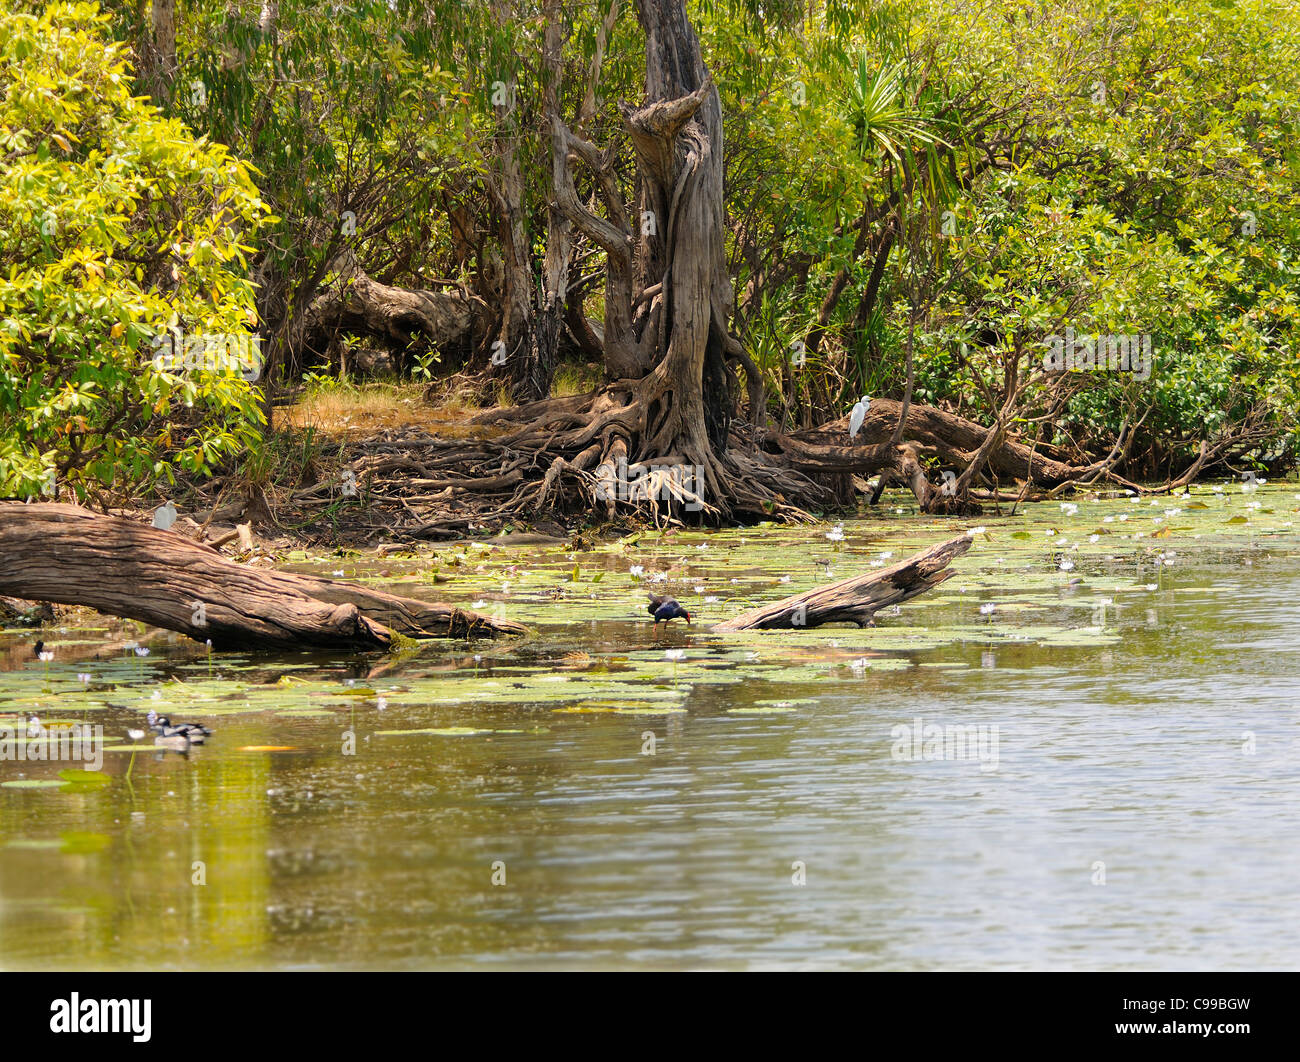 Exposed trees and roots in the Yellow Water Wetlands, Kakadu National Park, Top End, Northern Territory, Australia - Stock Image